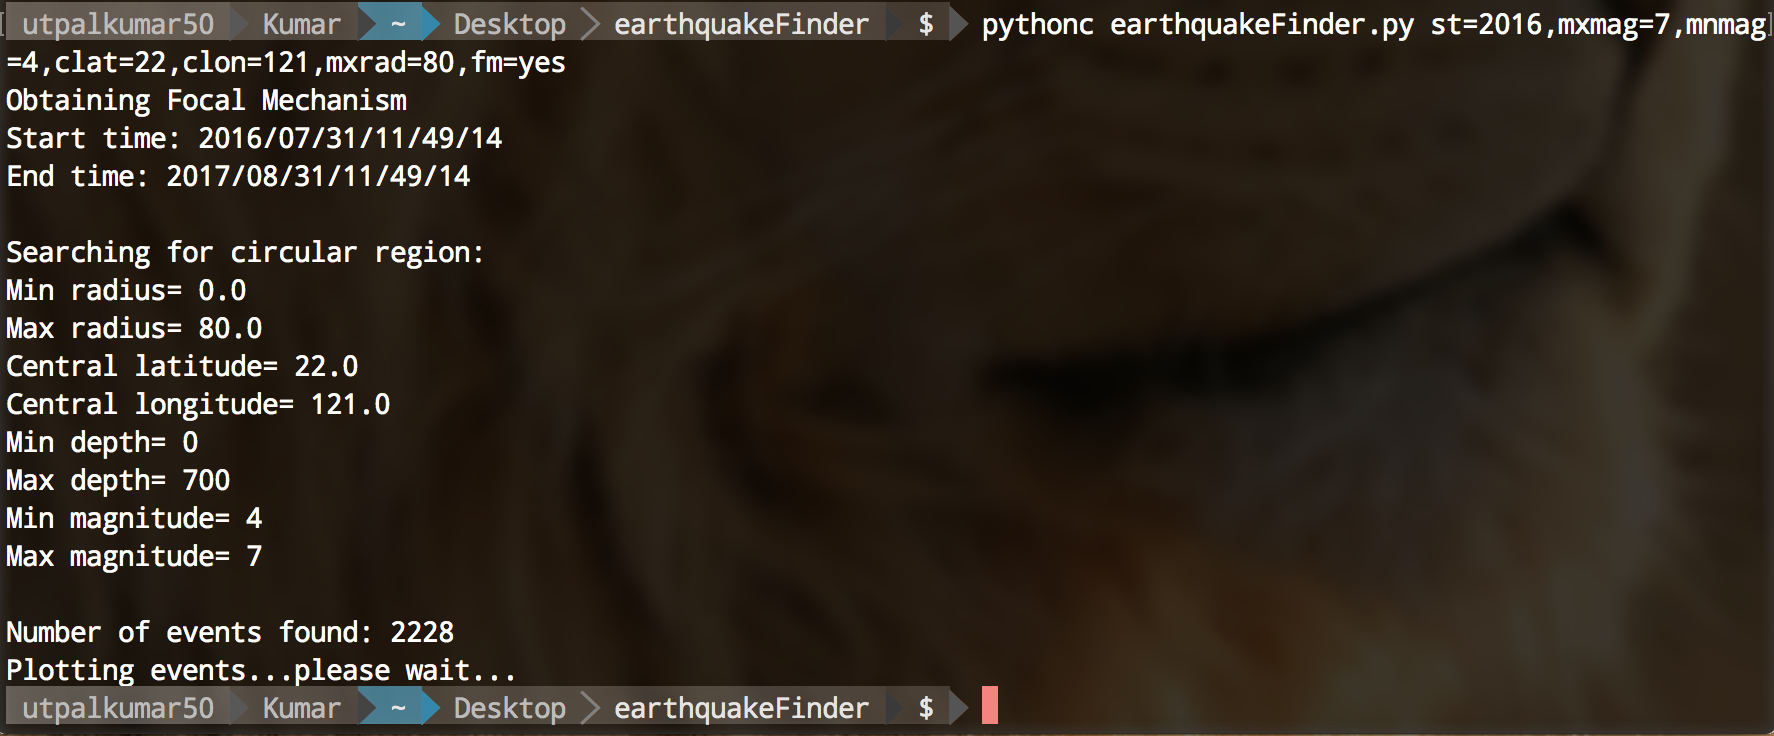 Earthquake Finder - Institute of Earth Sciences Coders